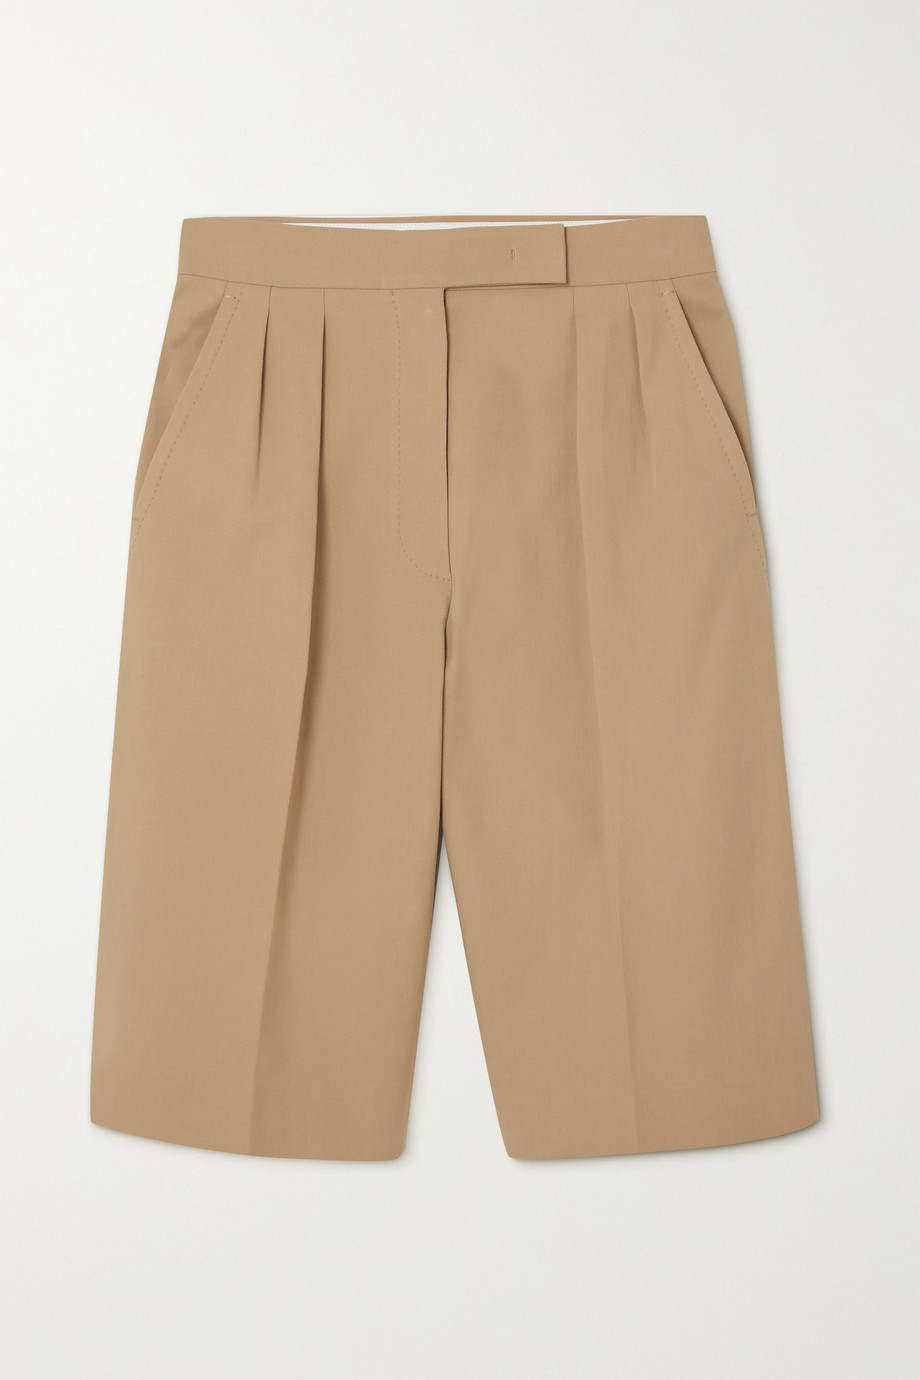 Max Mara Ottuso stretch-cotton shorts